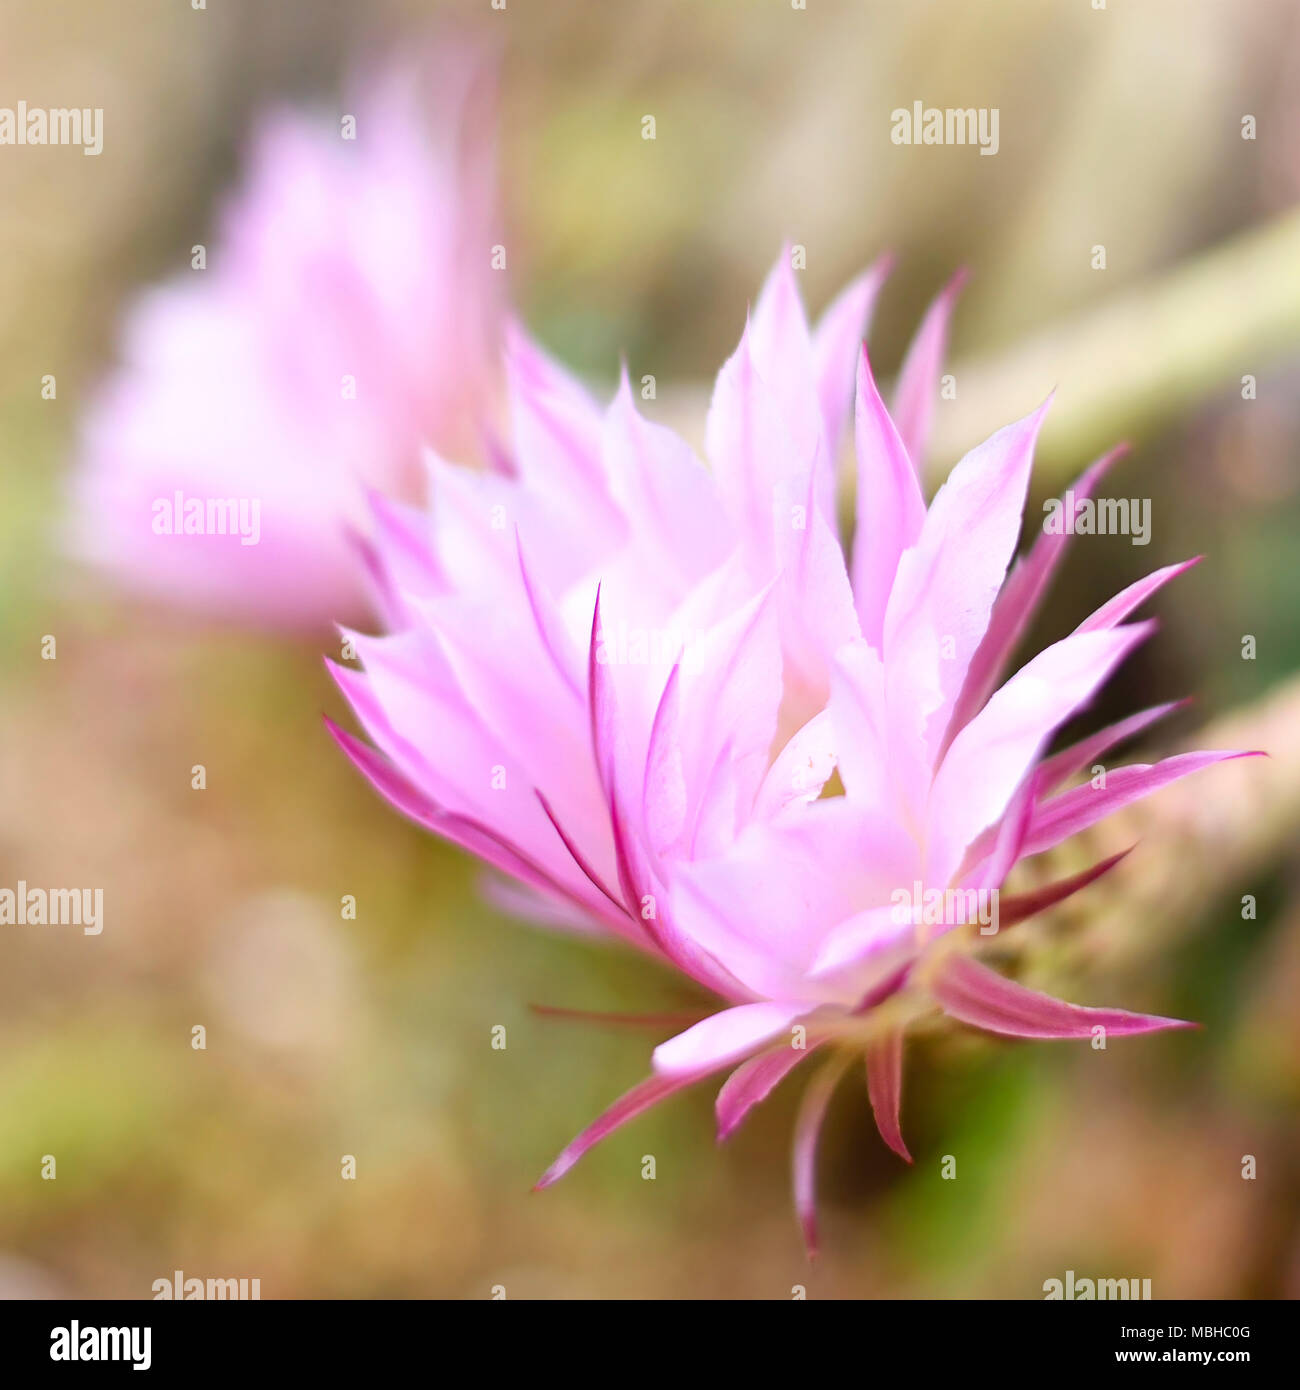 Pink desert flower stock photos pink desert flower stock images blossoming cactus with selective focus and pink or rose flowers desert plant with beautiful flowers mightylinksfo